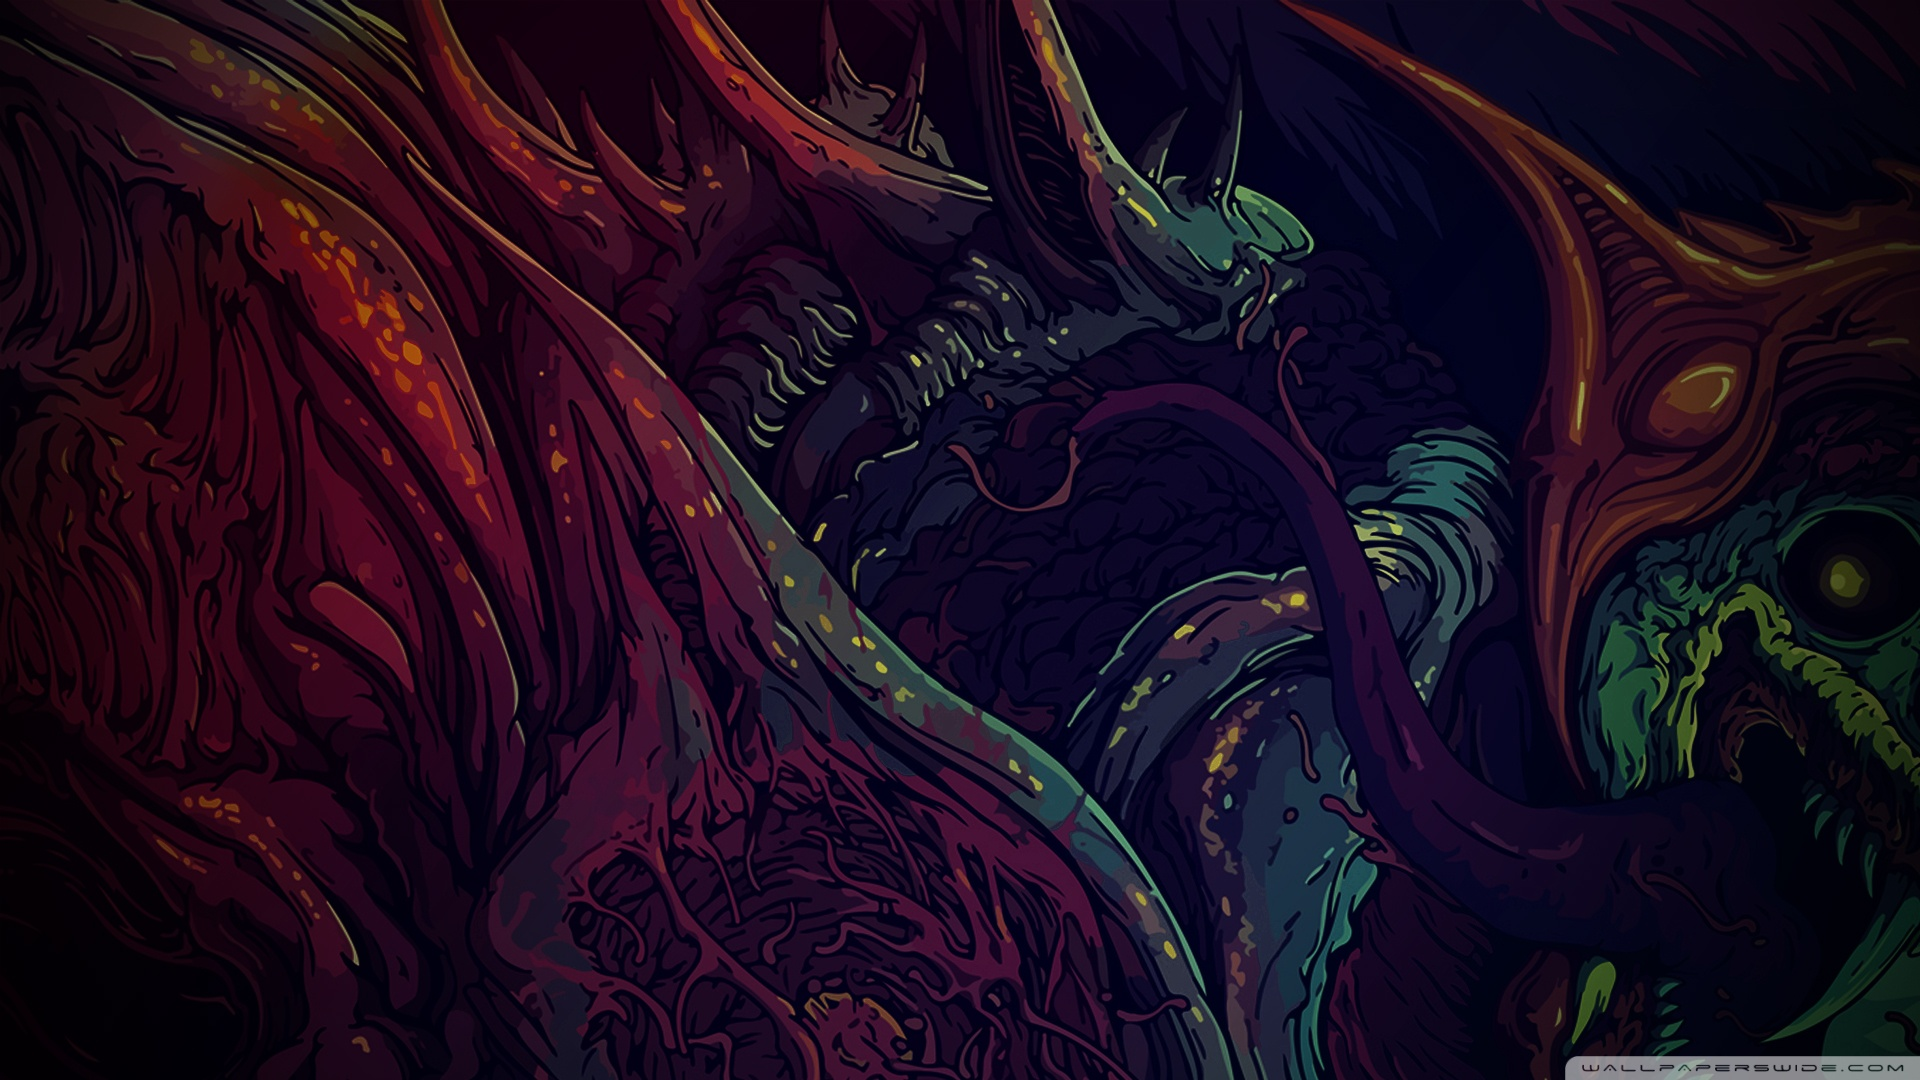 Free Download Hyper Beast 4k Hd Desktop Wallpaper For 4k